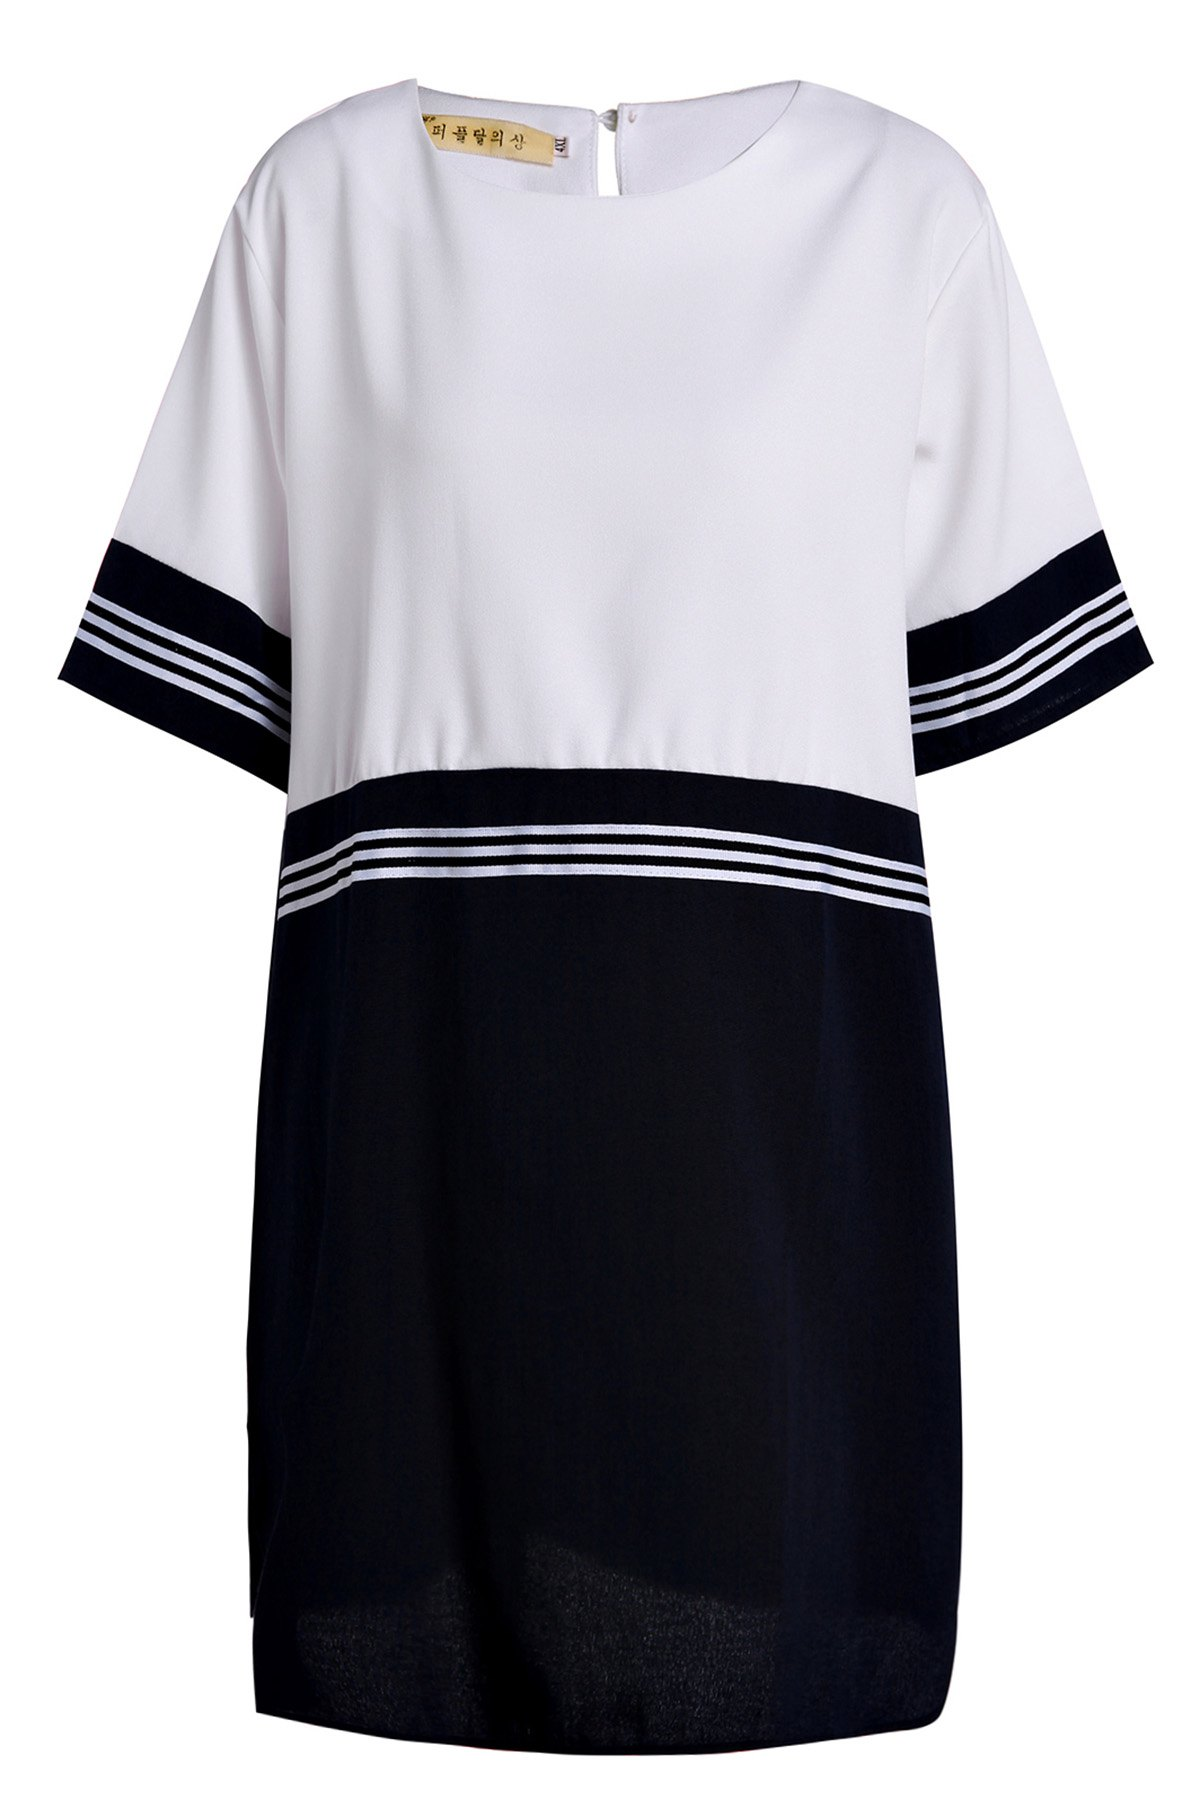 Preppy Style Women's Scoop Neck Short Sleeve Striped Plus Size Dress - WHITE 2XL